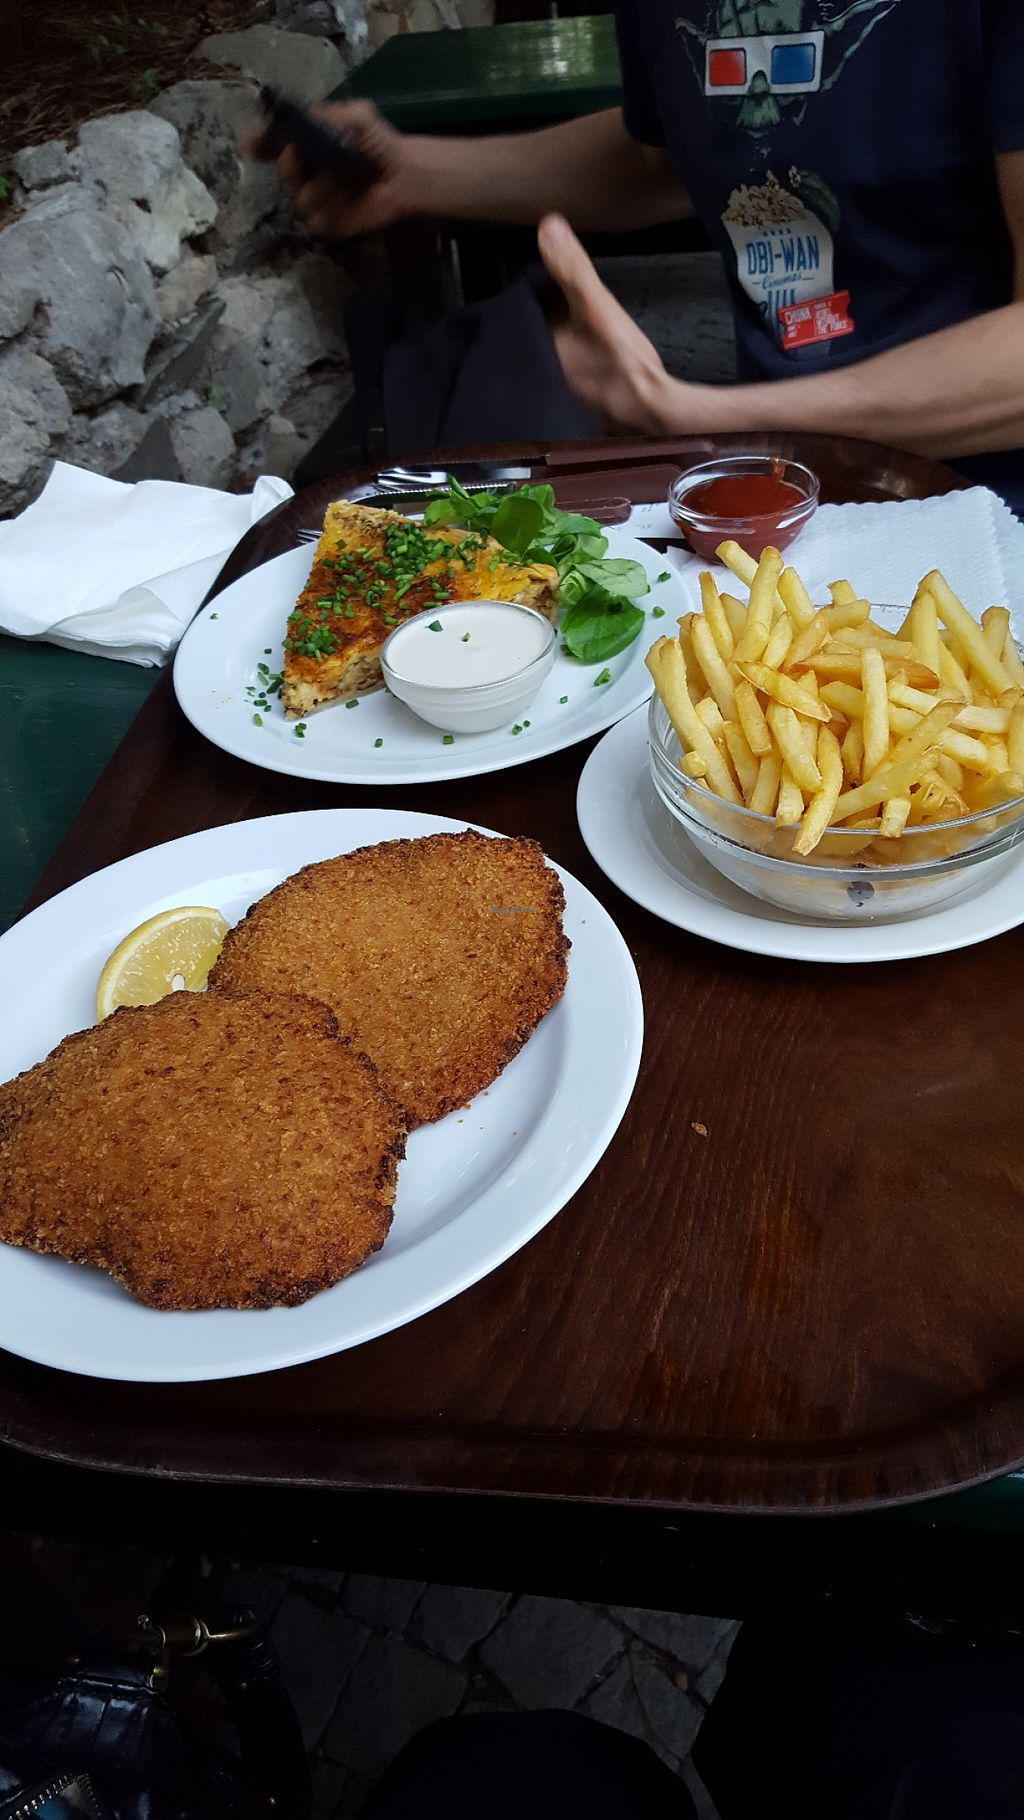 """Photo of Weingut Feuerwehr Wagner  by <a href=""""/members/profile/ElenaBre"""">ElenaBre</a> <br/>vegan schnitzel and quiche <br/> July 26, 2016  - <a href='/contact/abuse/image/46646/162379'>Report</a>"""